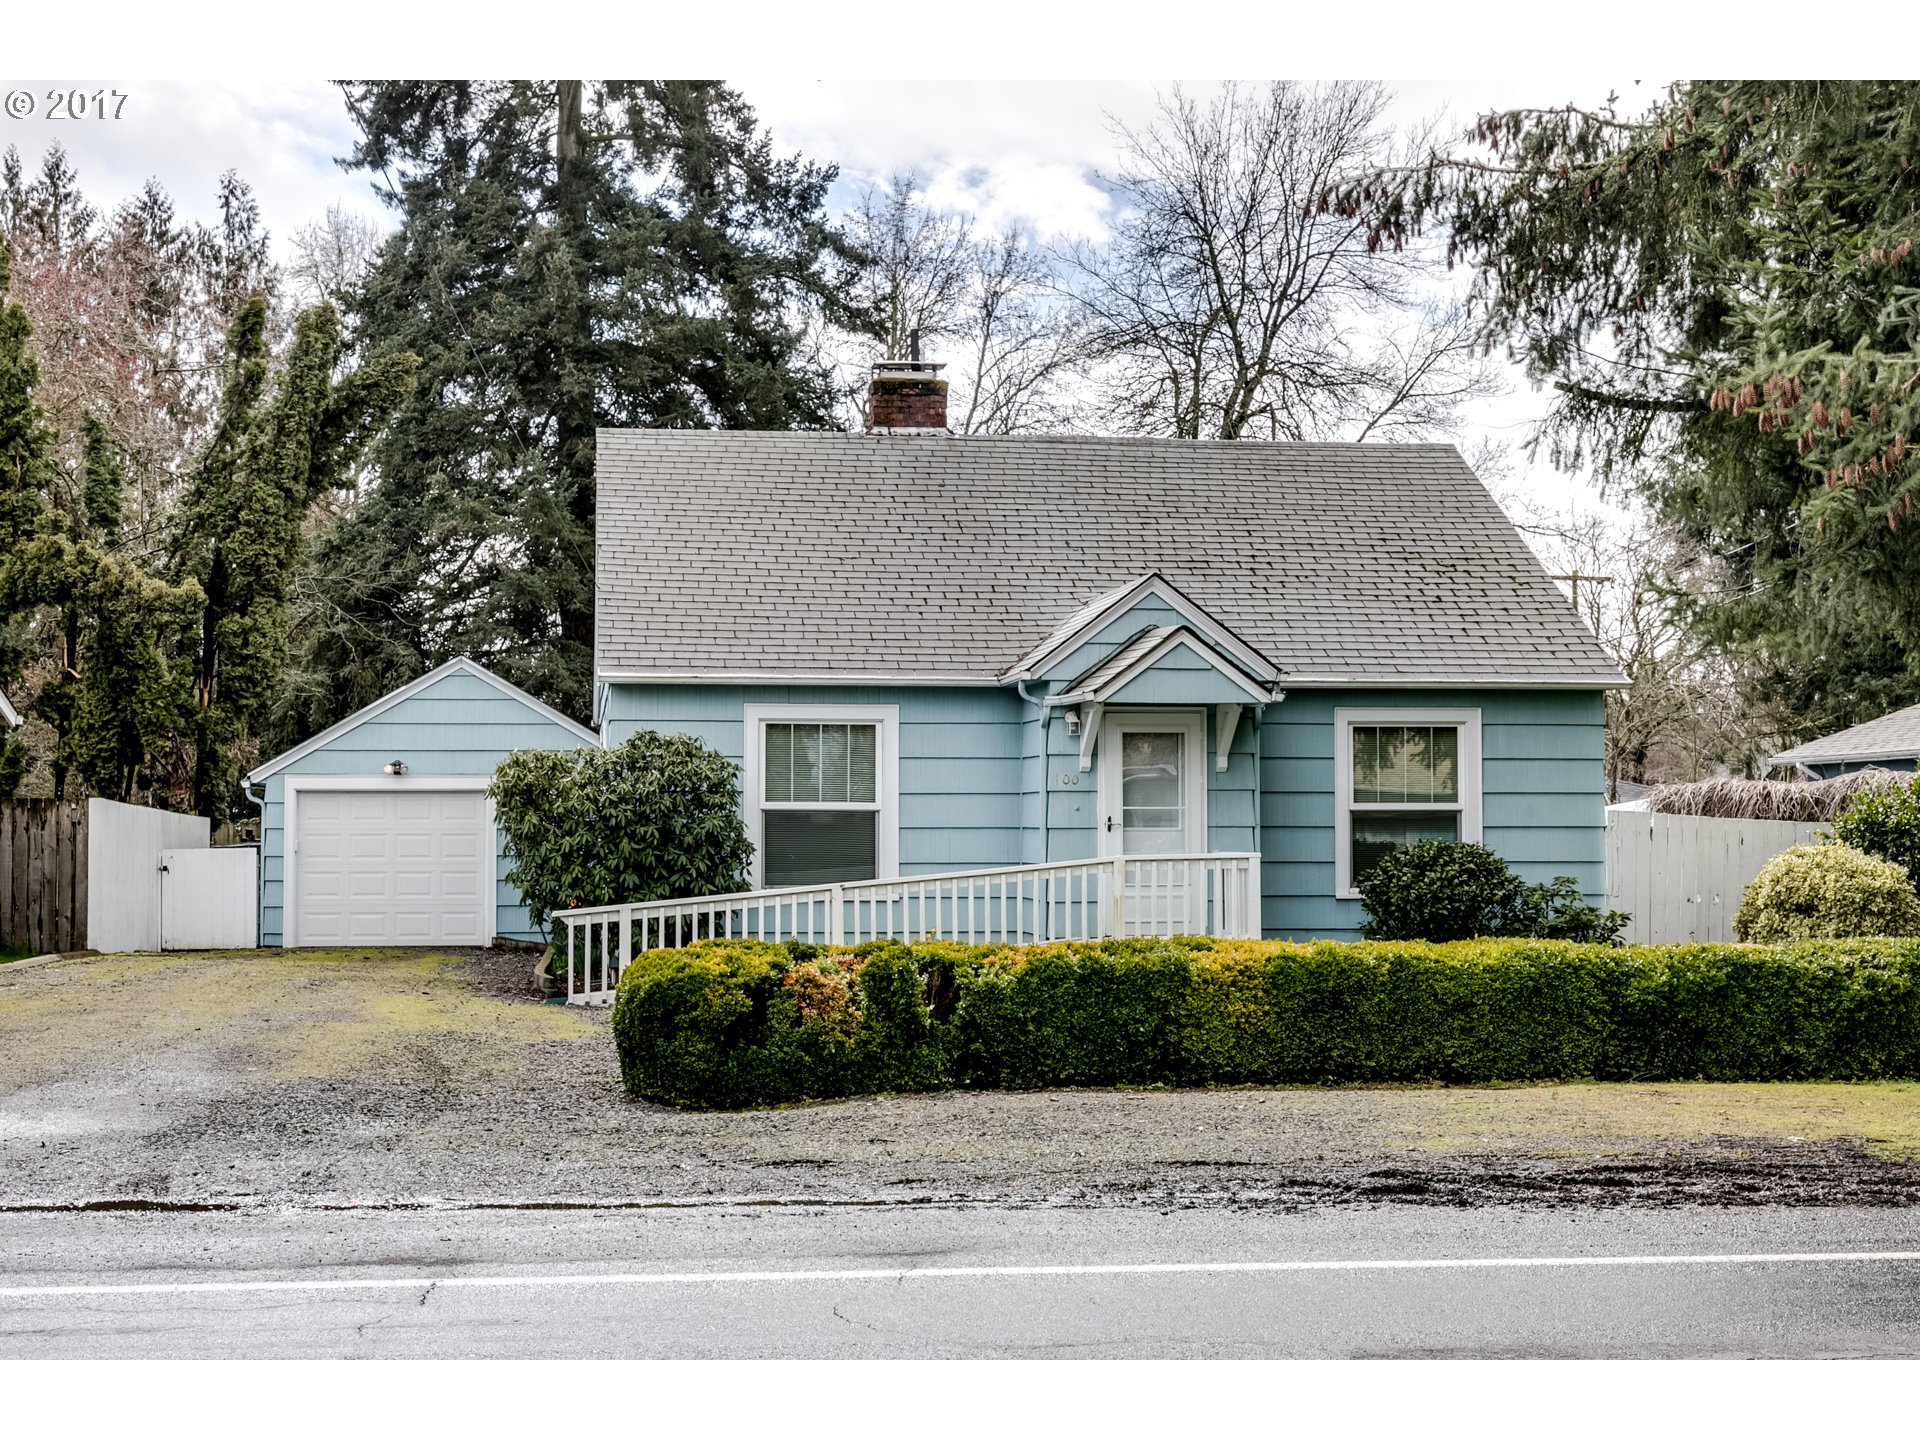 100 HOWARD AVE, Eugene, OR 97404